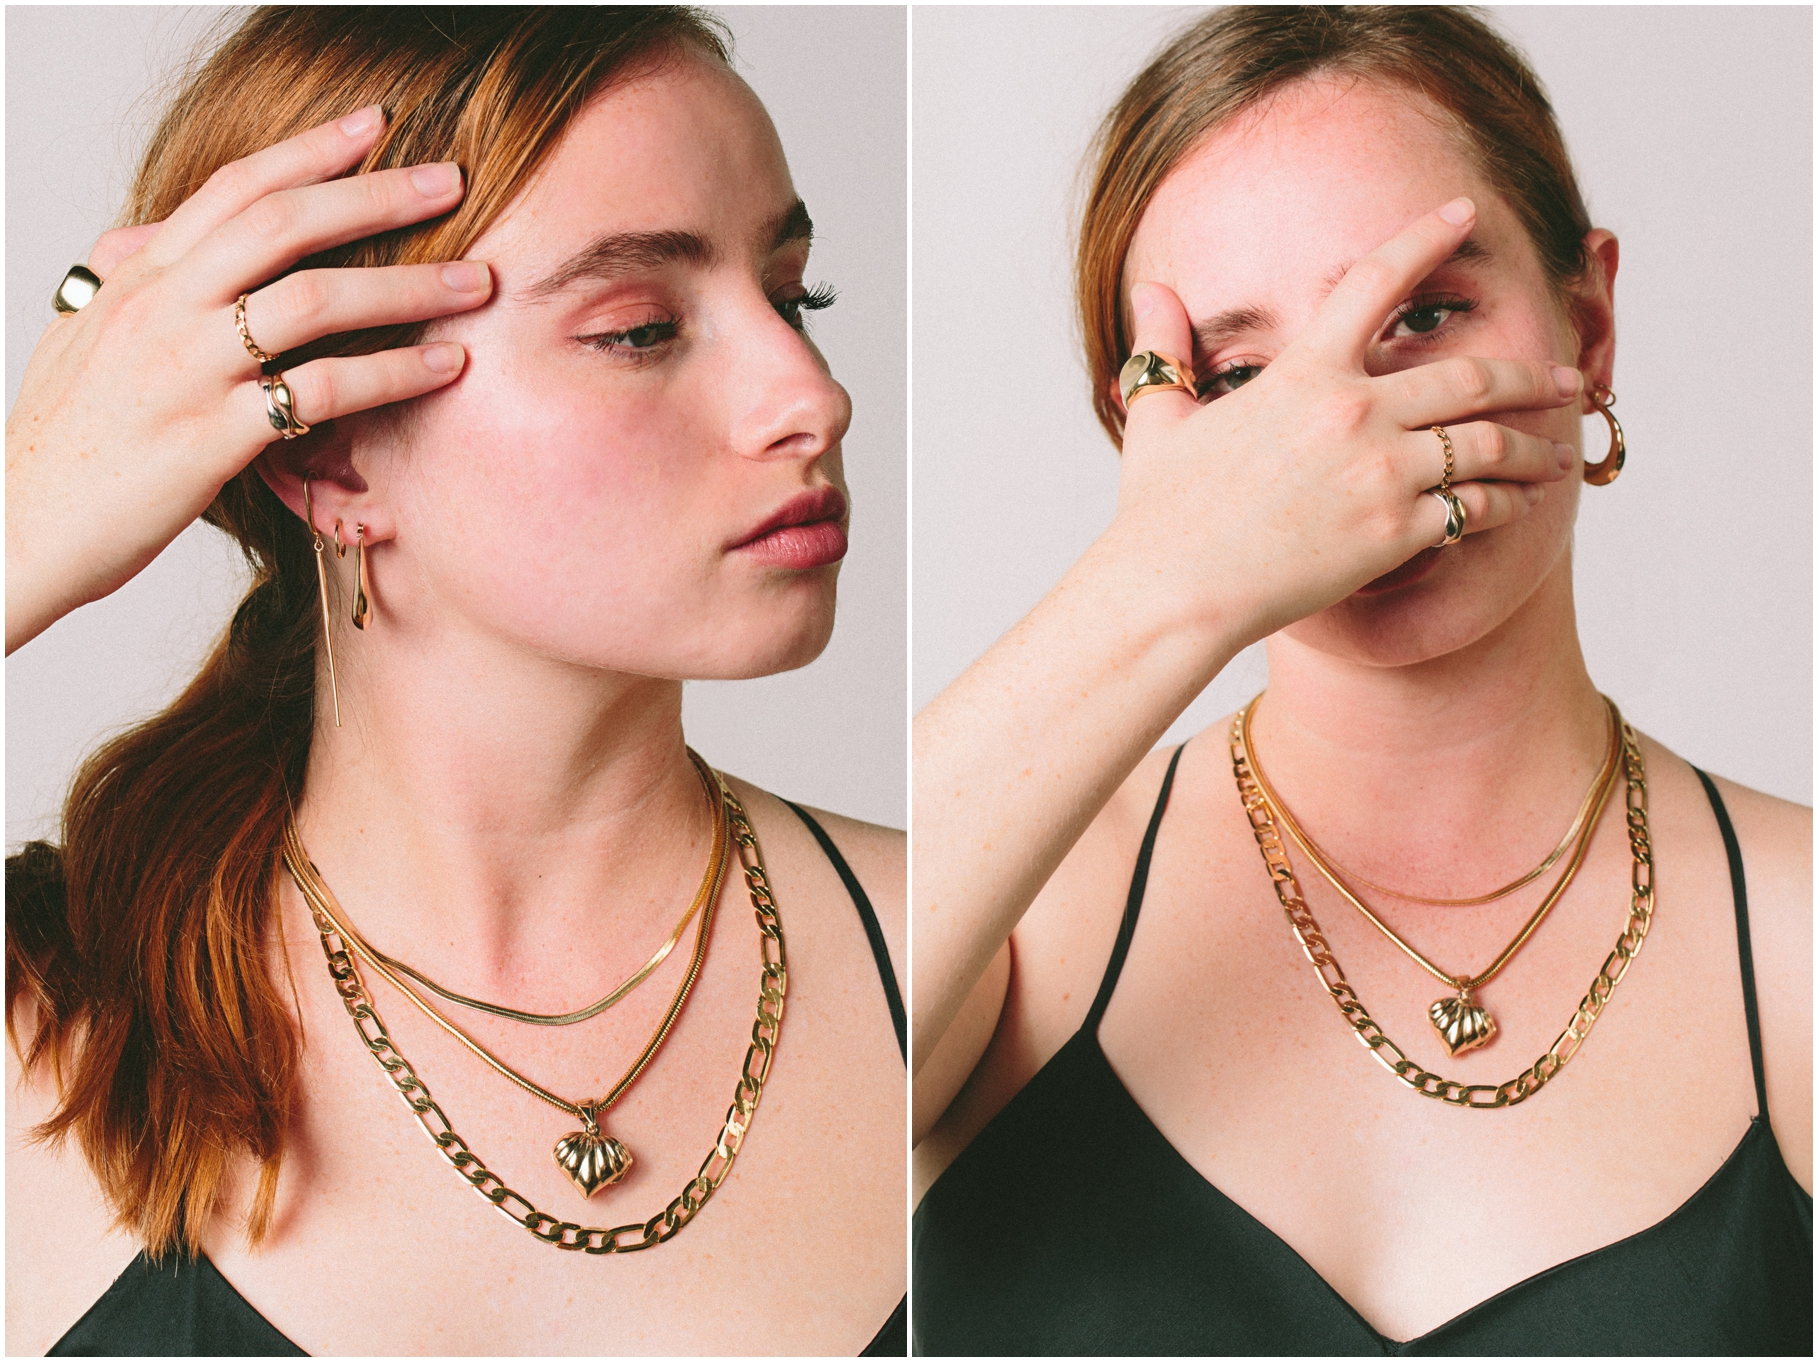 onesixfive, one six five jewlery, adam lowe photography, commercial, editorial, photography, studio, ,model, fashion, columbus, ohio, clintonville, boutique,